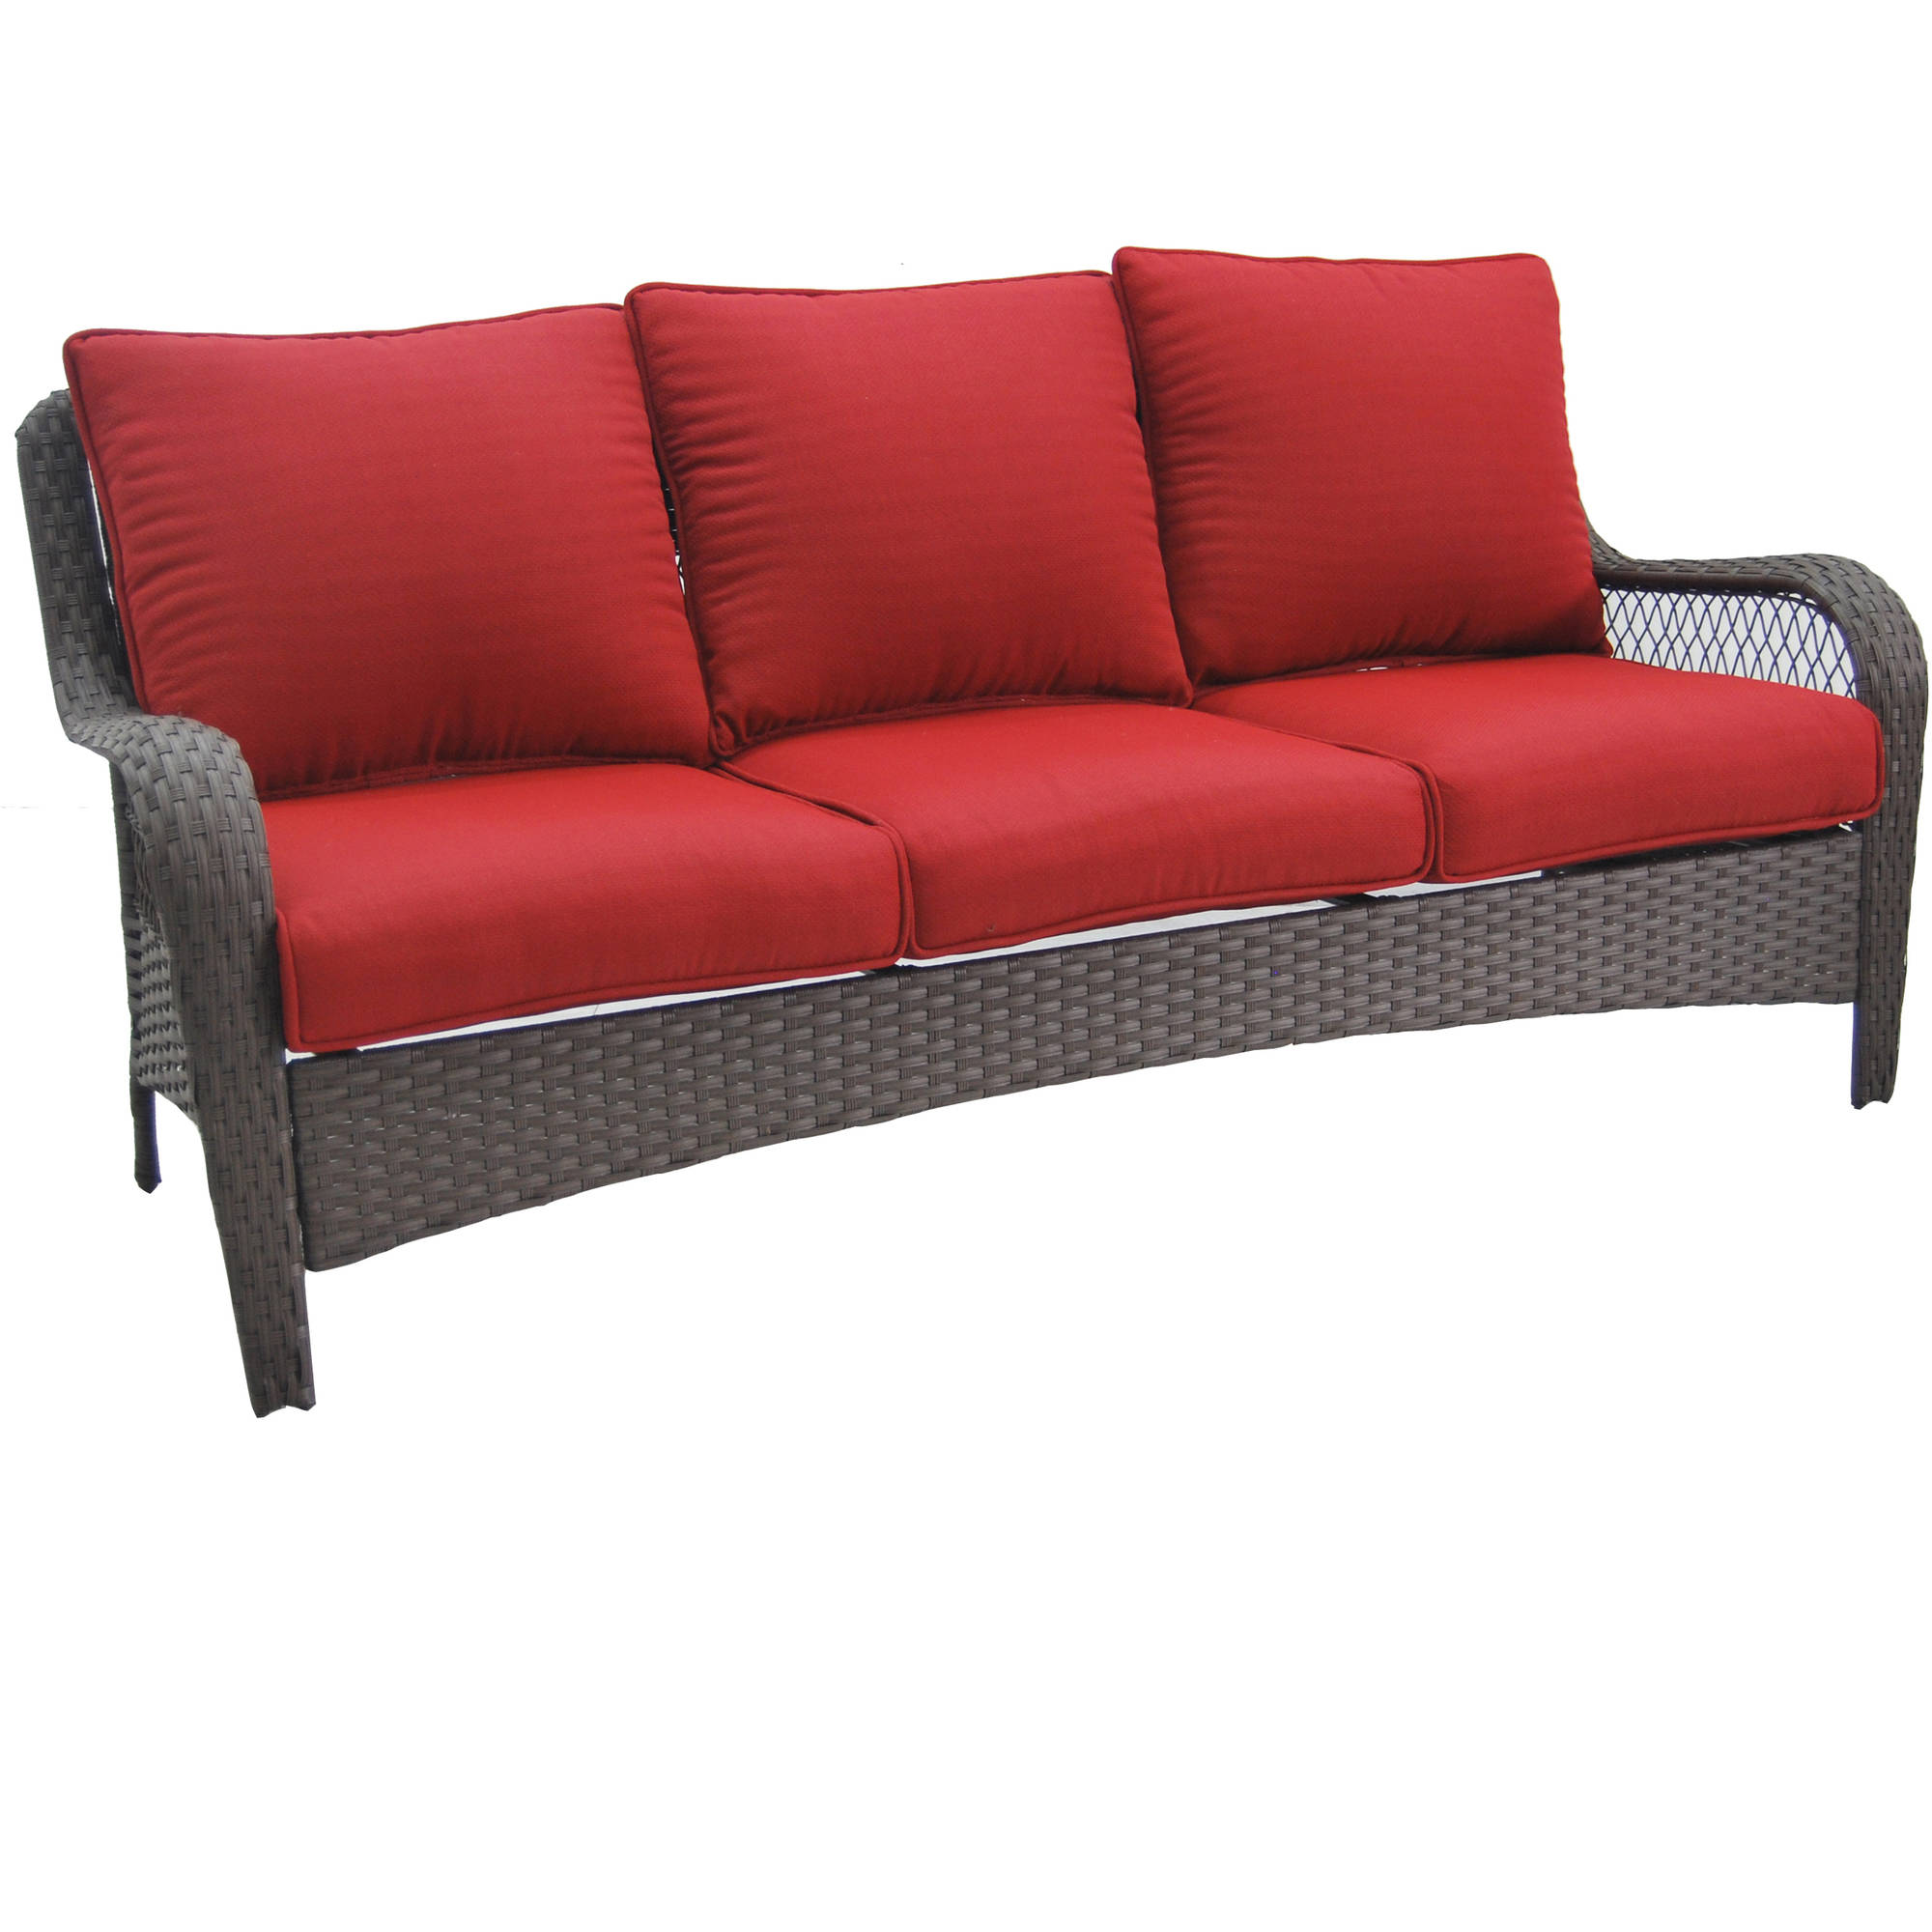 better homes and gardens colebrook outdoor sofa seats 3 red